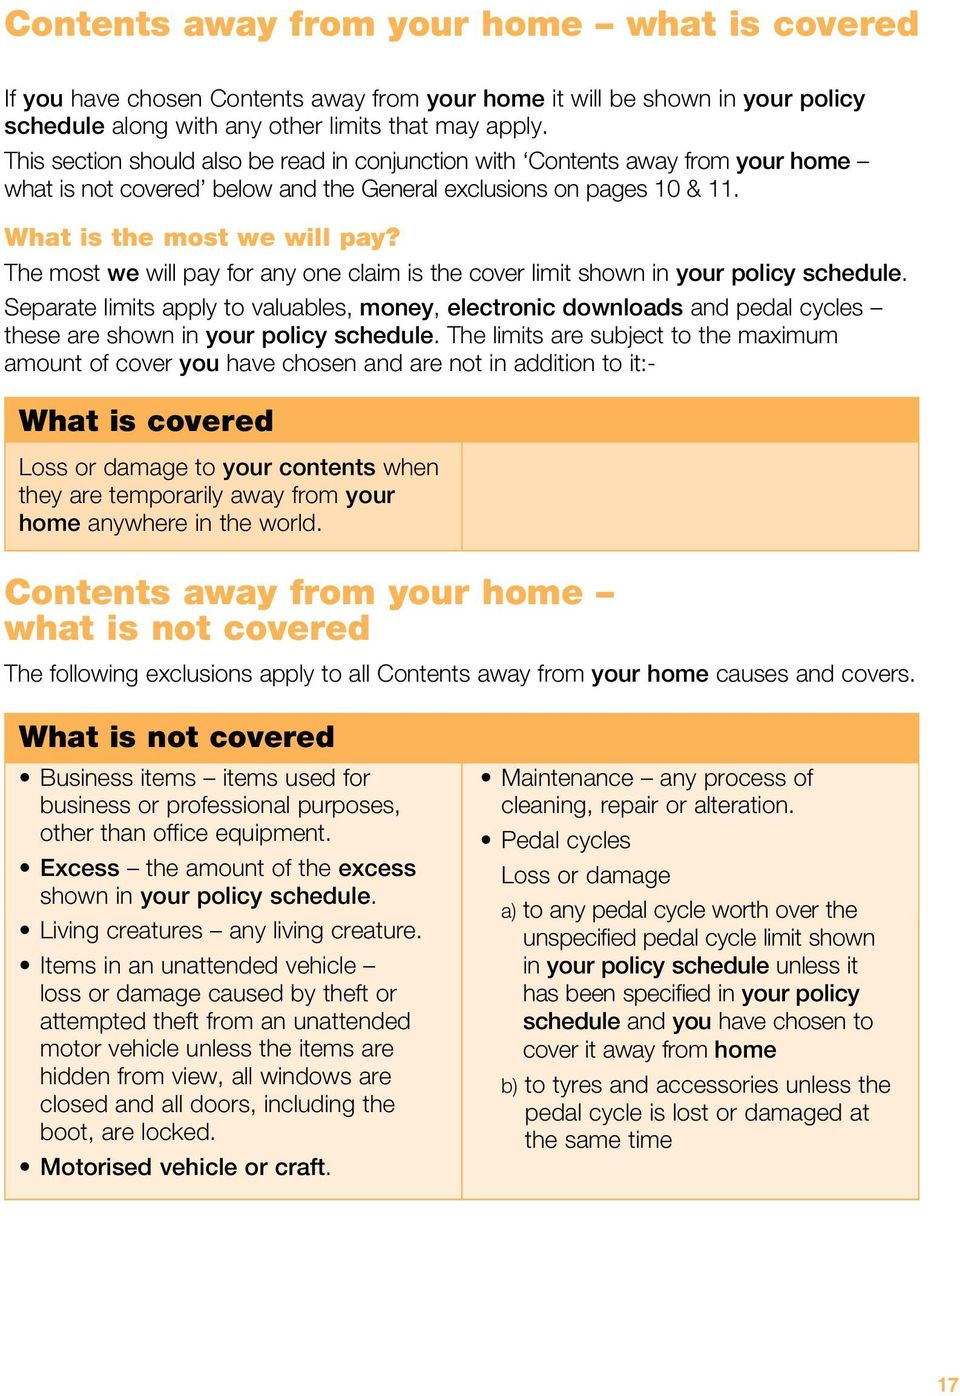 The most we will pay for any one claim is the cover limit shown in your policy schedule.